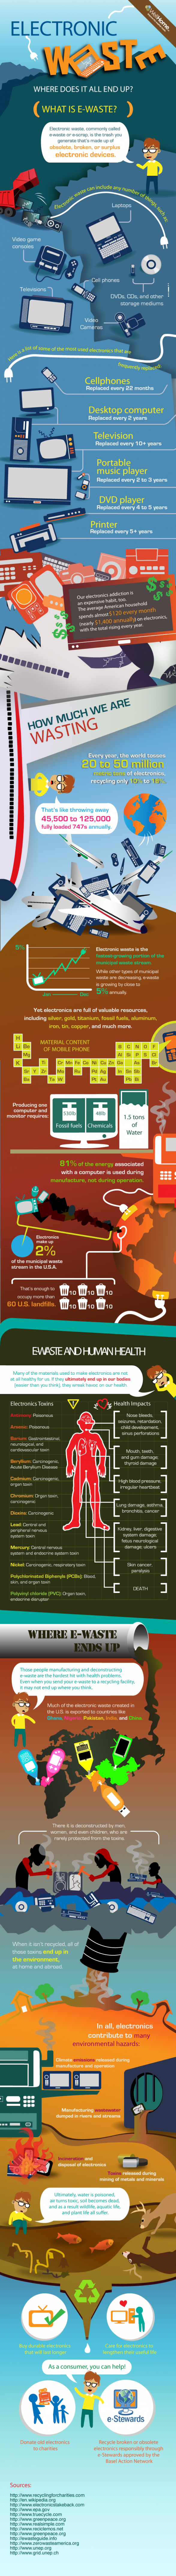 Electronic Waste: Where Does it End Up?